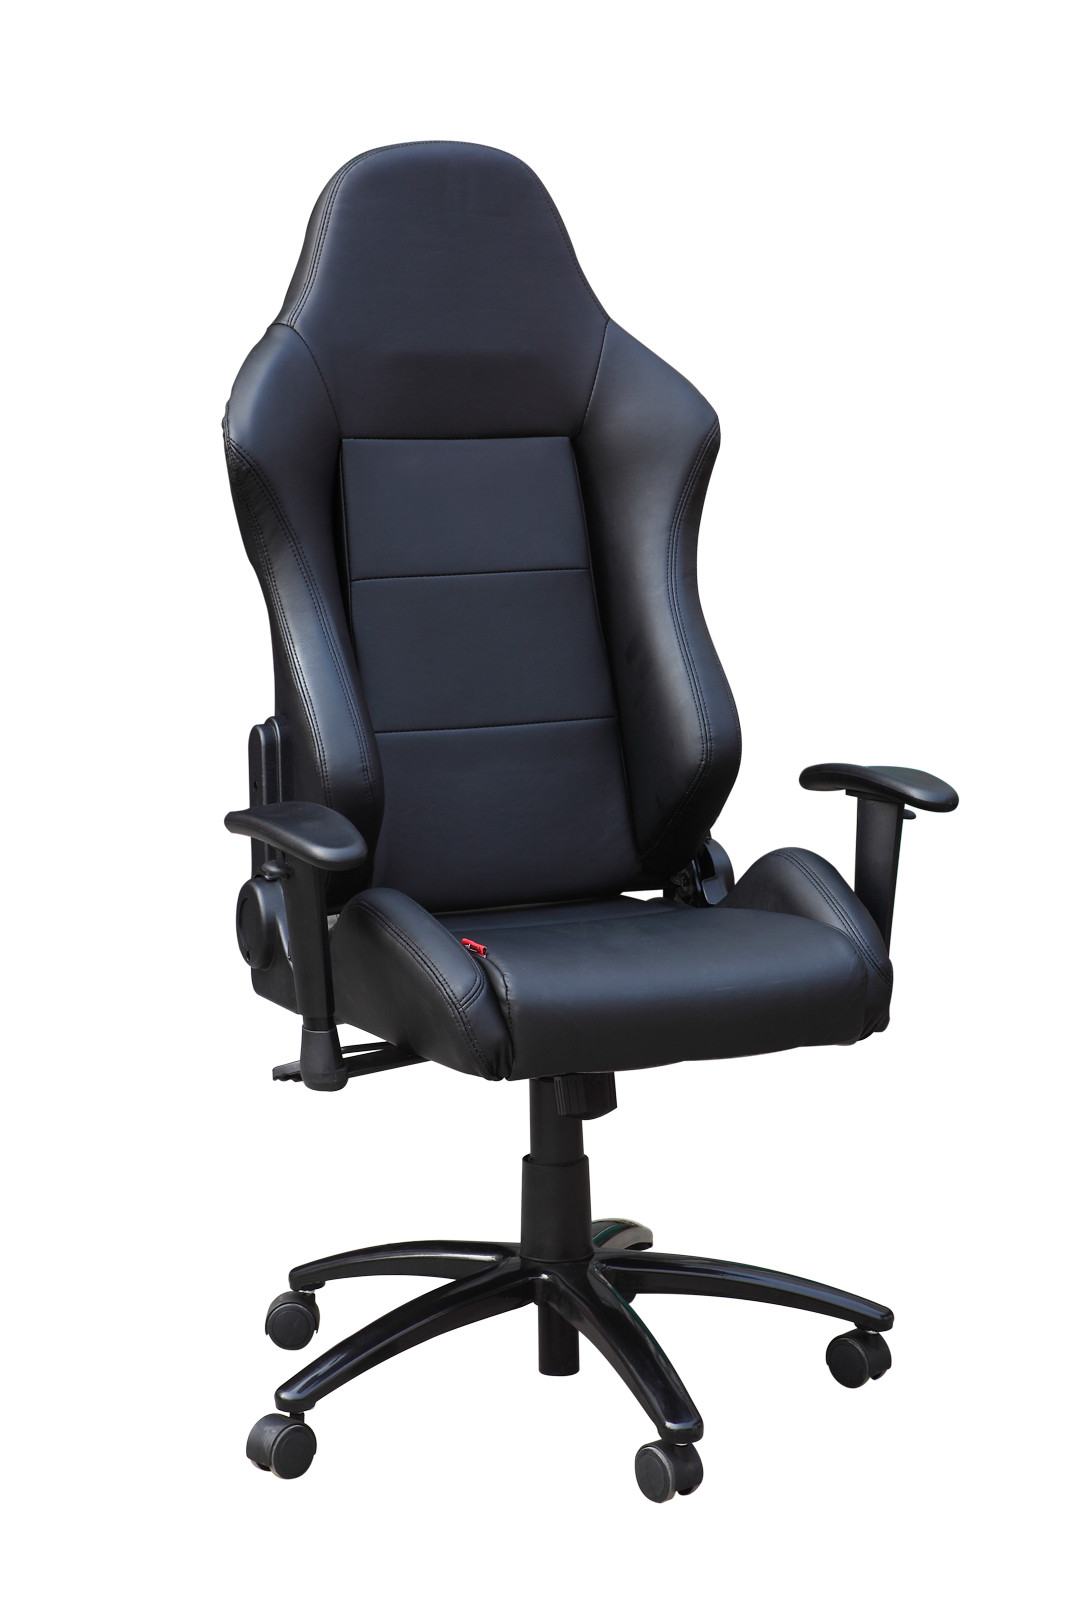 Commercial Black Leather Back Adjustable Office Chair With Nylon Castors